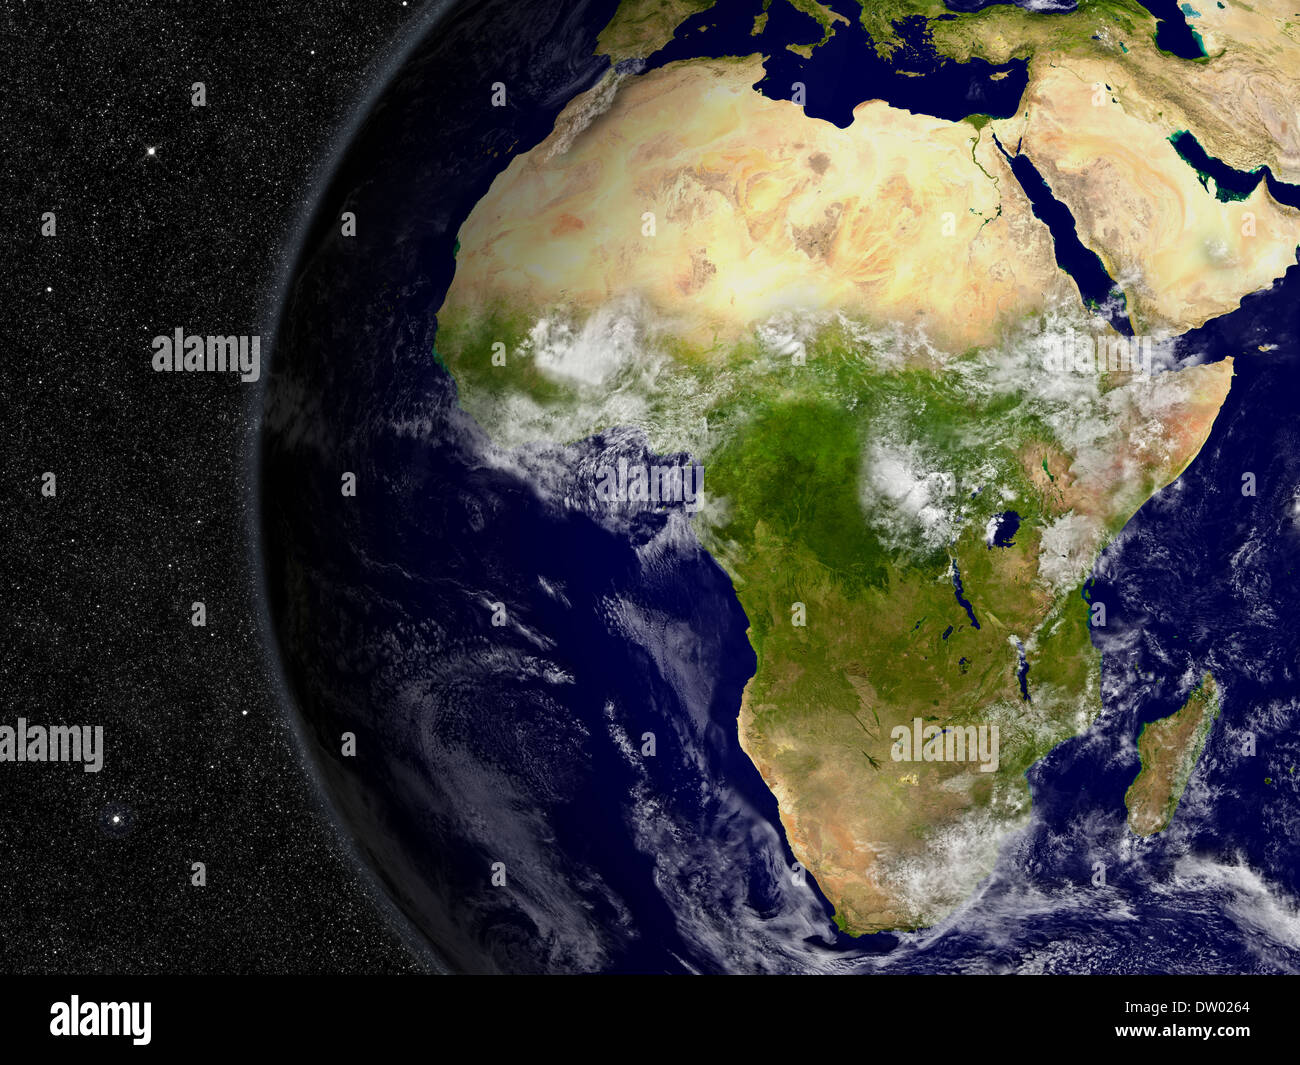 Africa region on planet Earth from space with stars in the background. Elements of this image furnished by NASA. - Stock Image